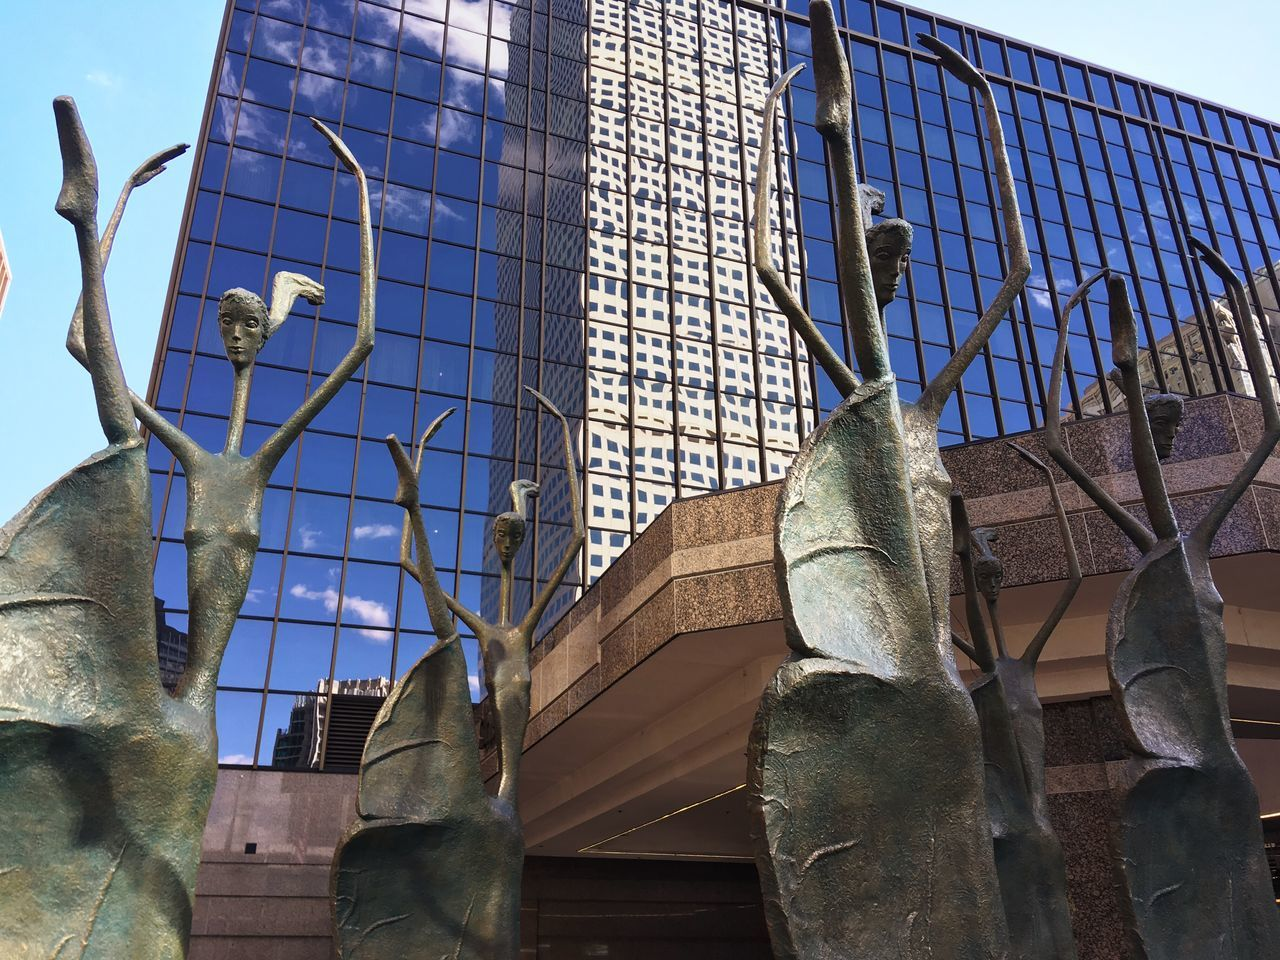 I came across these statues had to shoot it. Day No People Outdoors Modern City Sky Ballet Statues